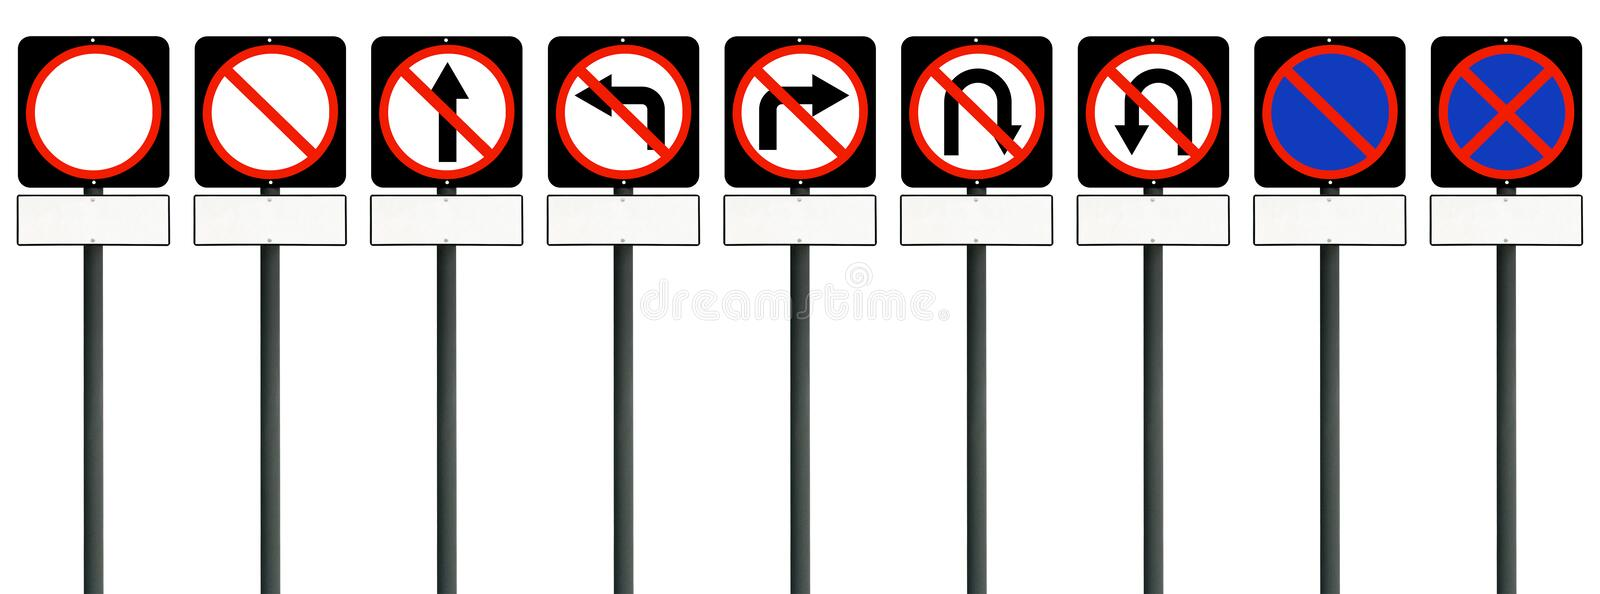 Road sign isolated with empty on white background with clipping path. Set of blank billboard black traffic signs is prohibited for stock images